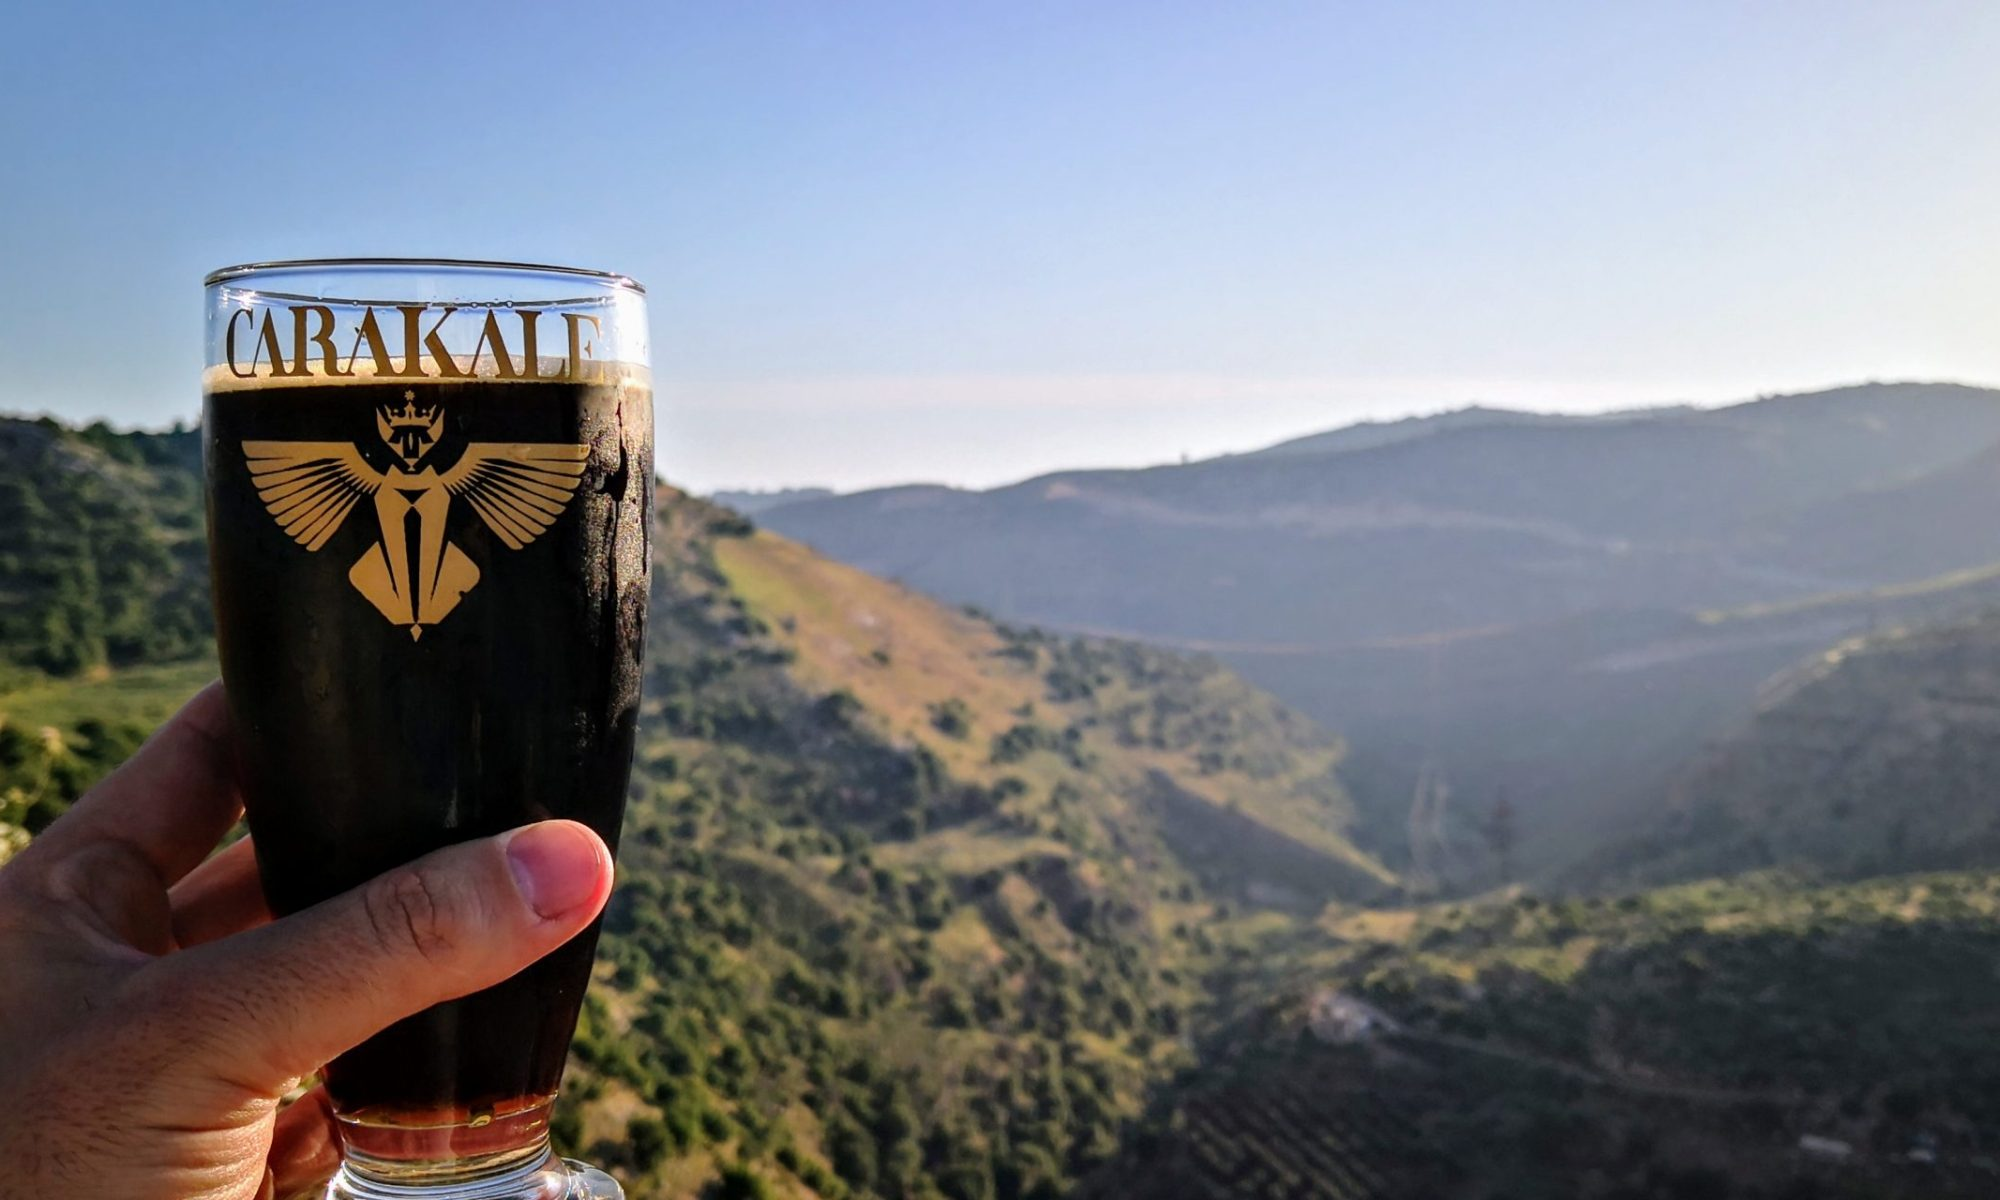 A glass of Schwarzbier in front of a canyon at Carakale Brewery located in Fuheis, Jordan